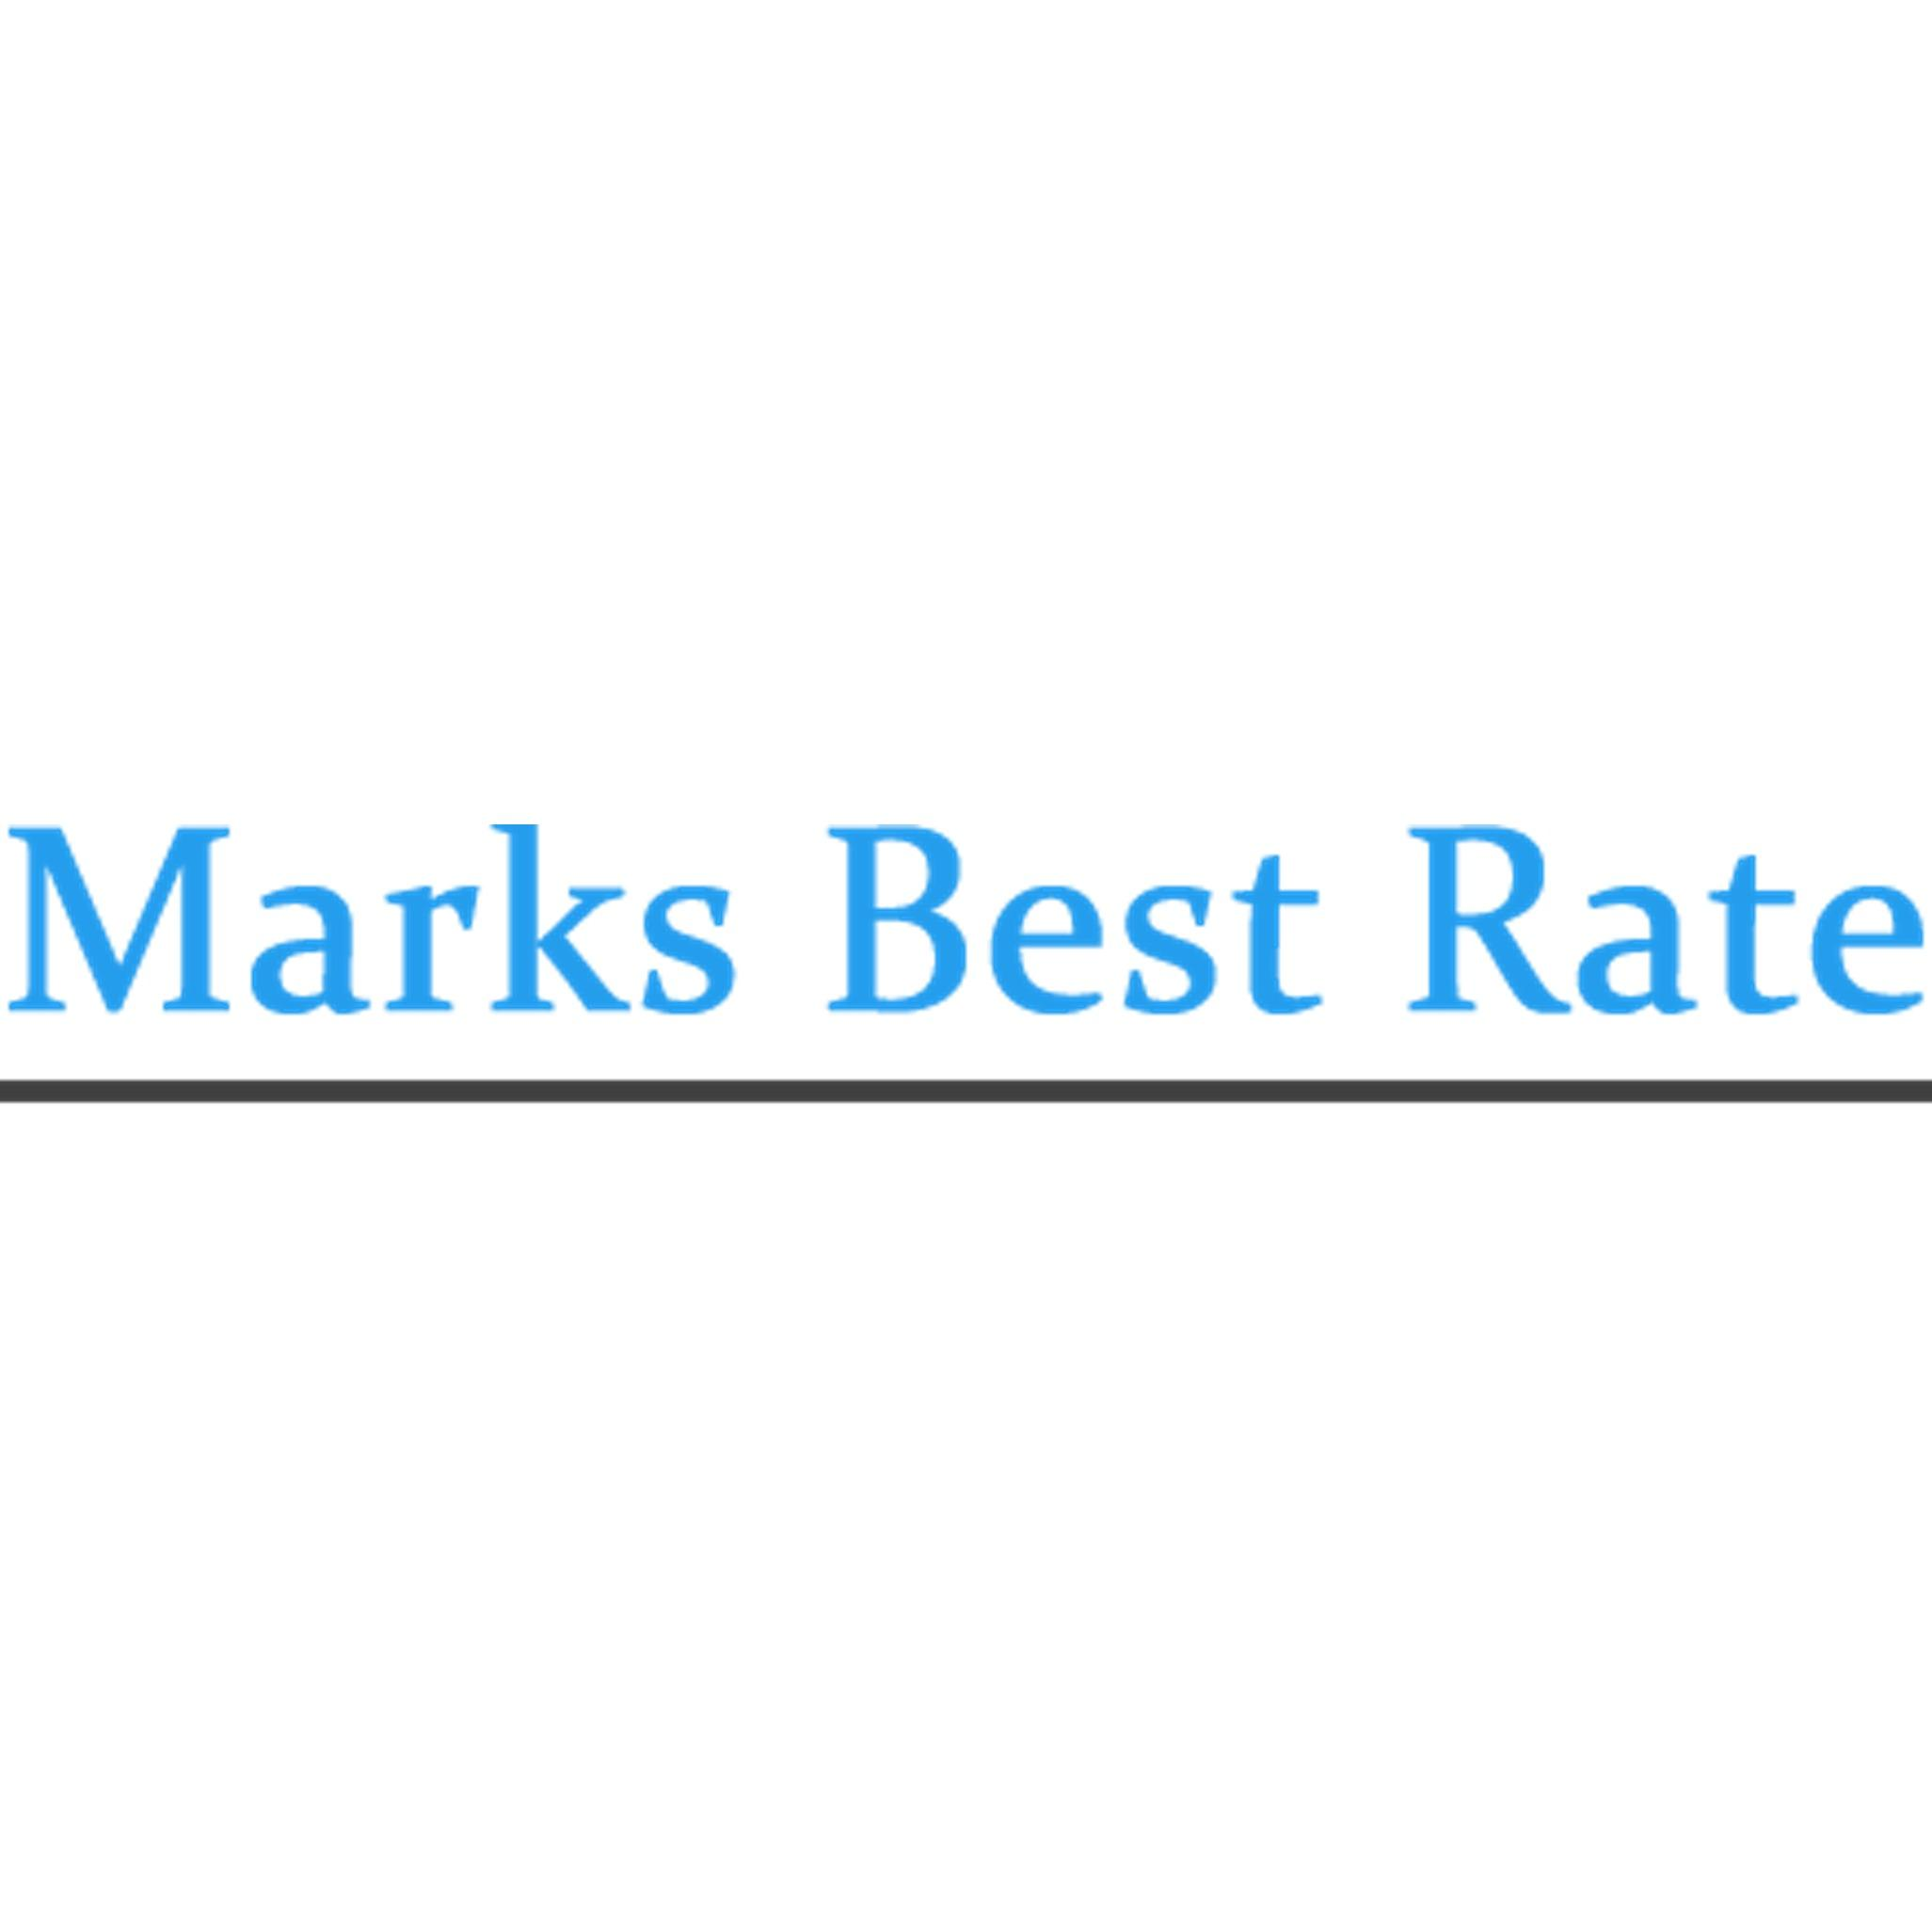 Marks Best Rate